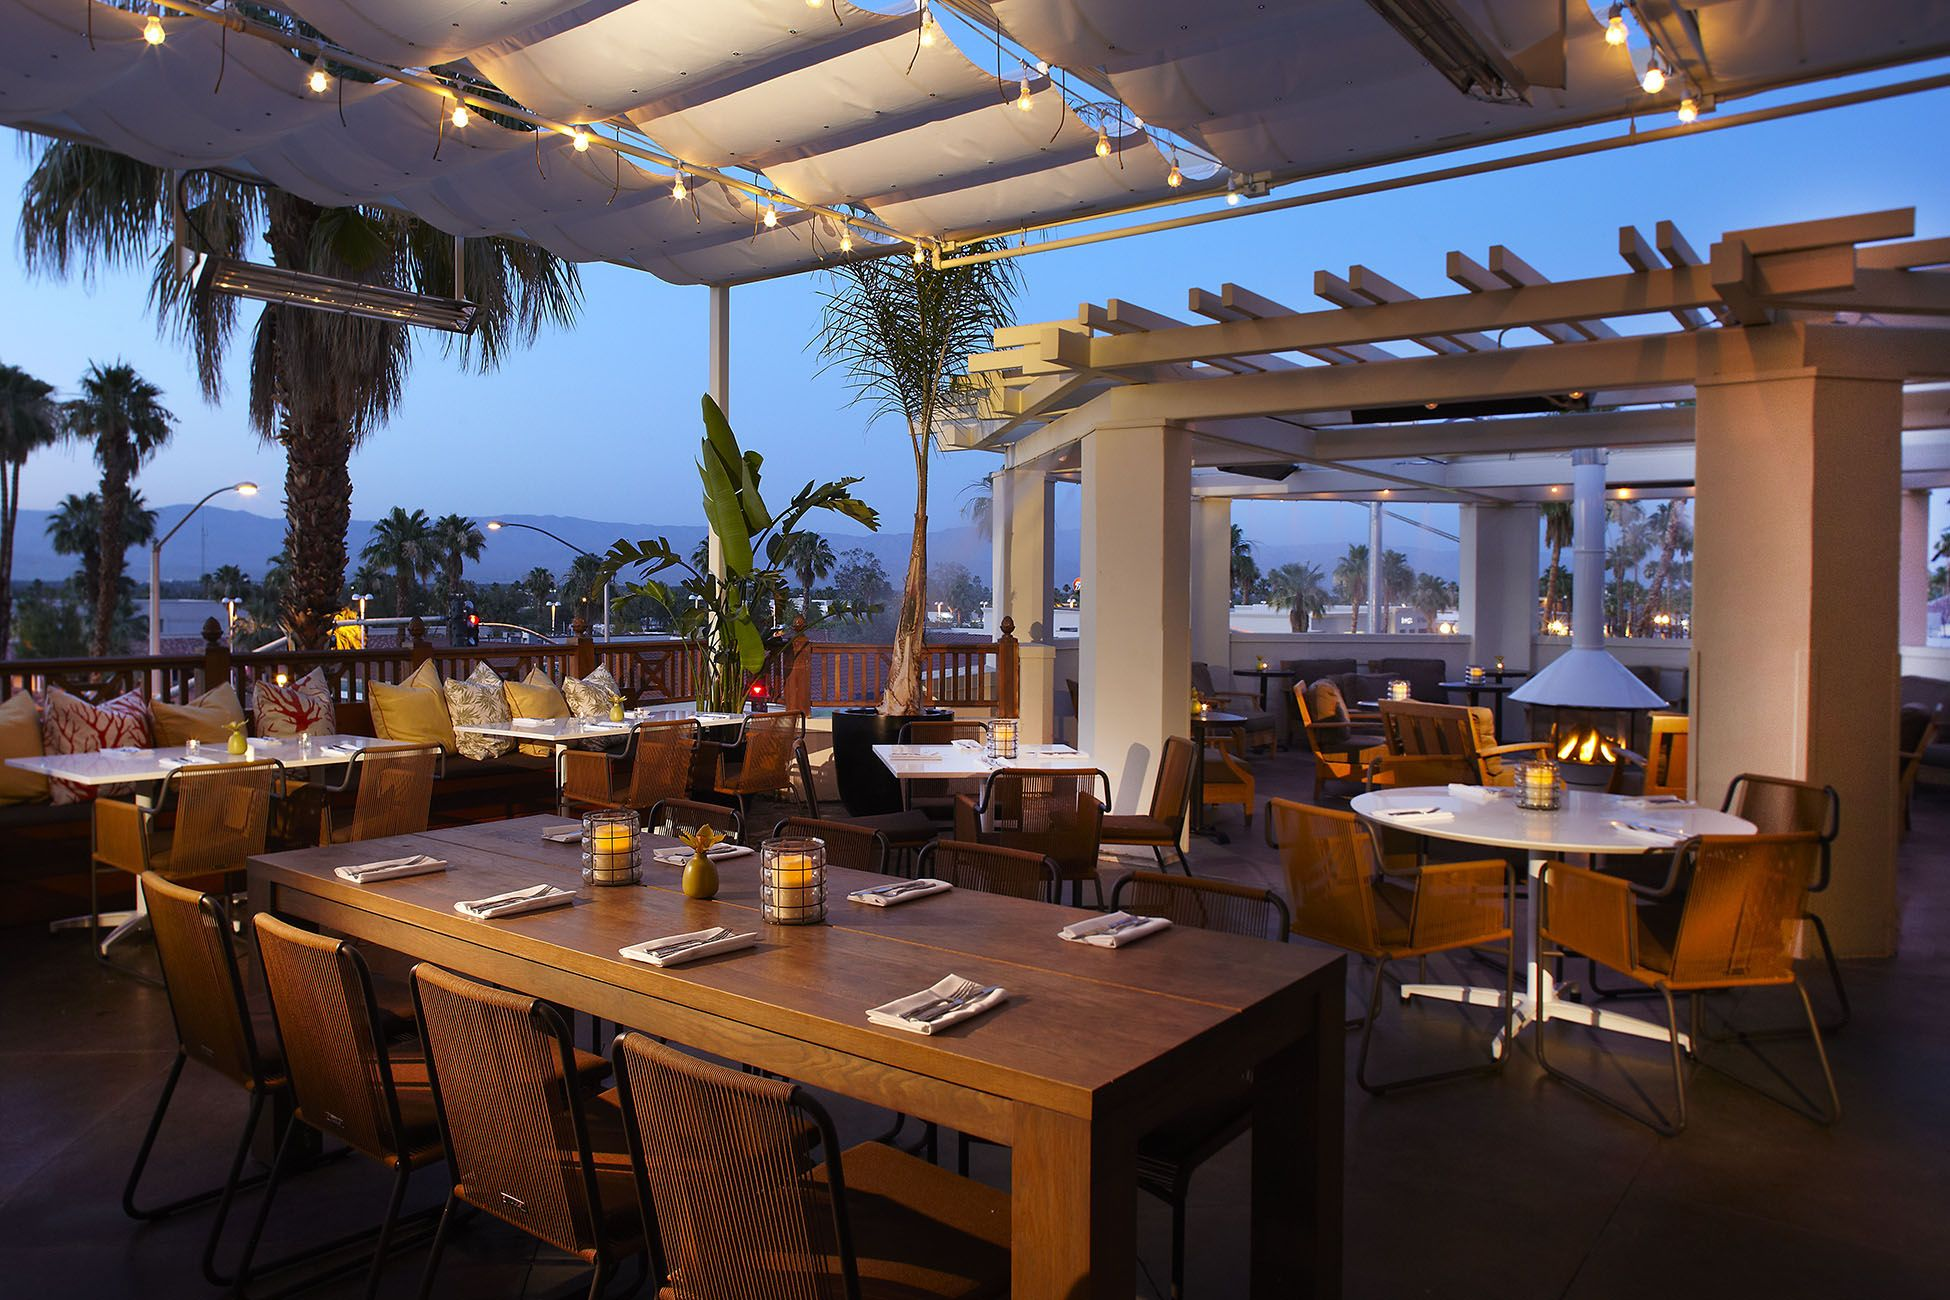 The Best Outdoor Dining Restaurants In America According To